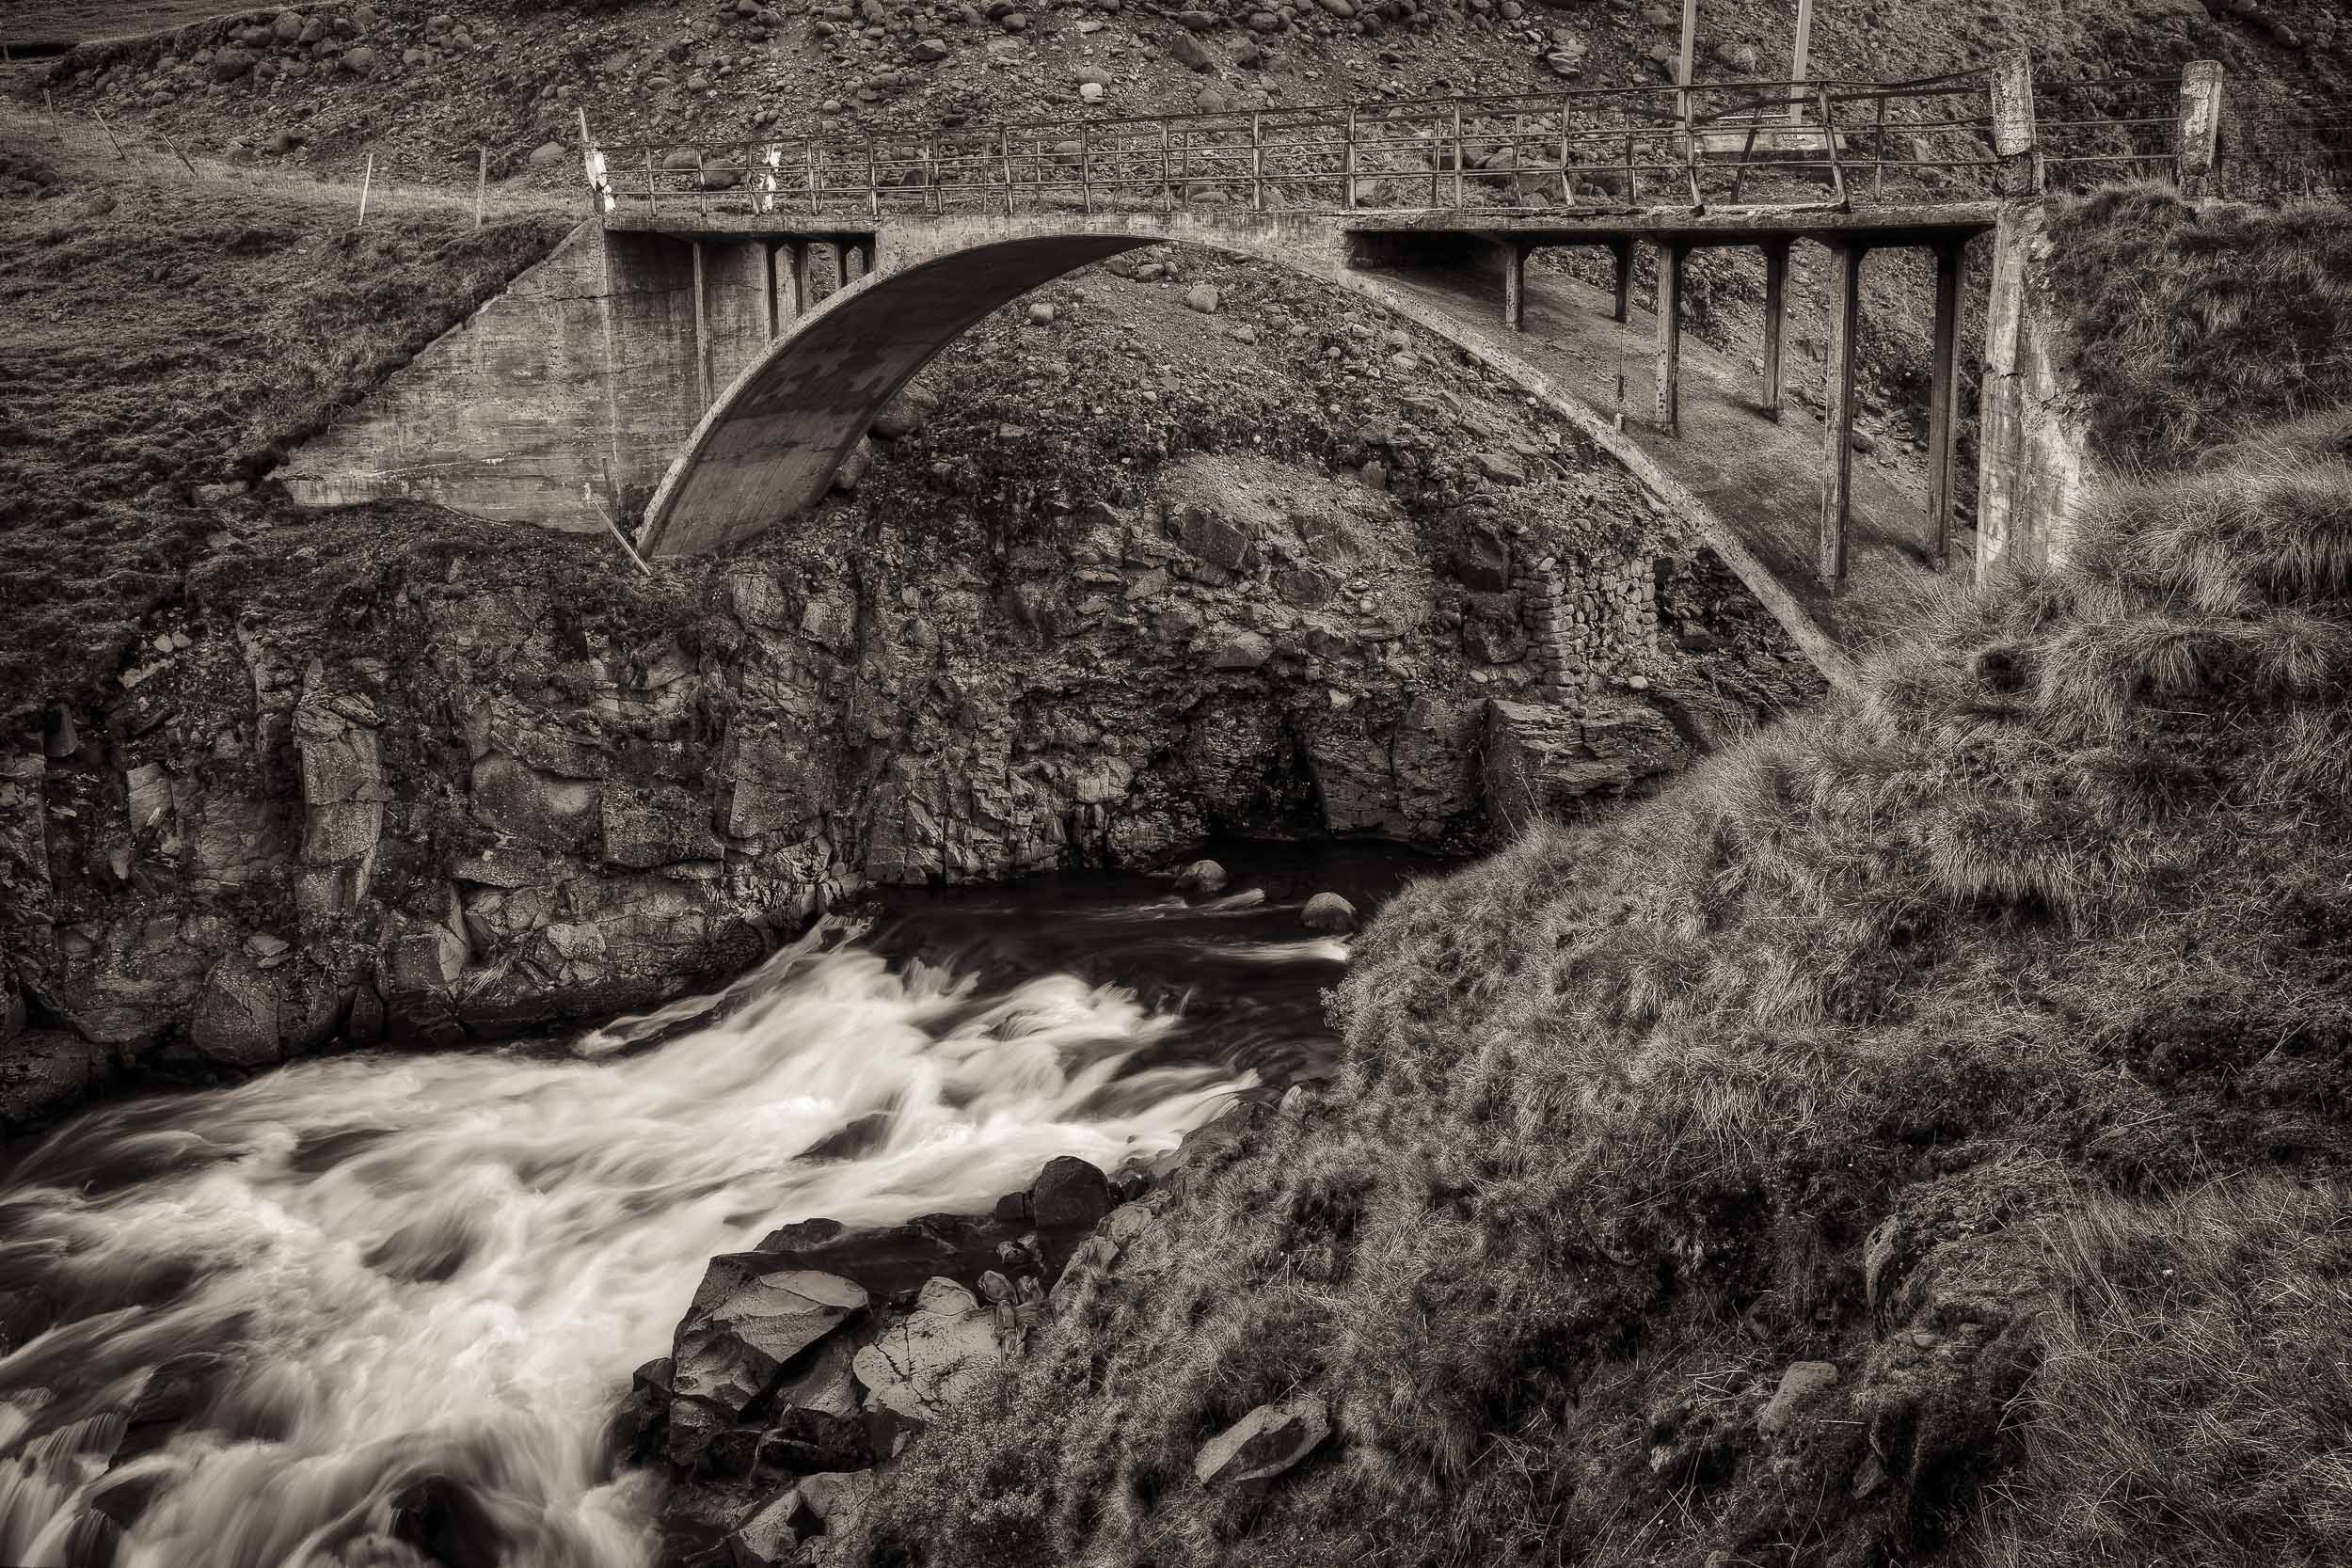 An  old stone bridge  spanning a  fast moving stream  in rural  Iceland .